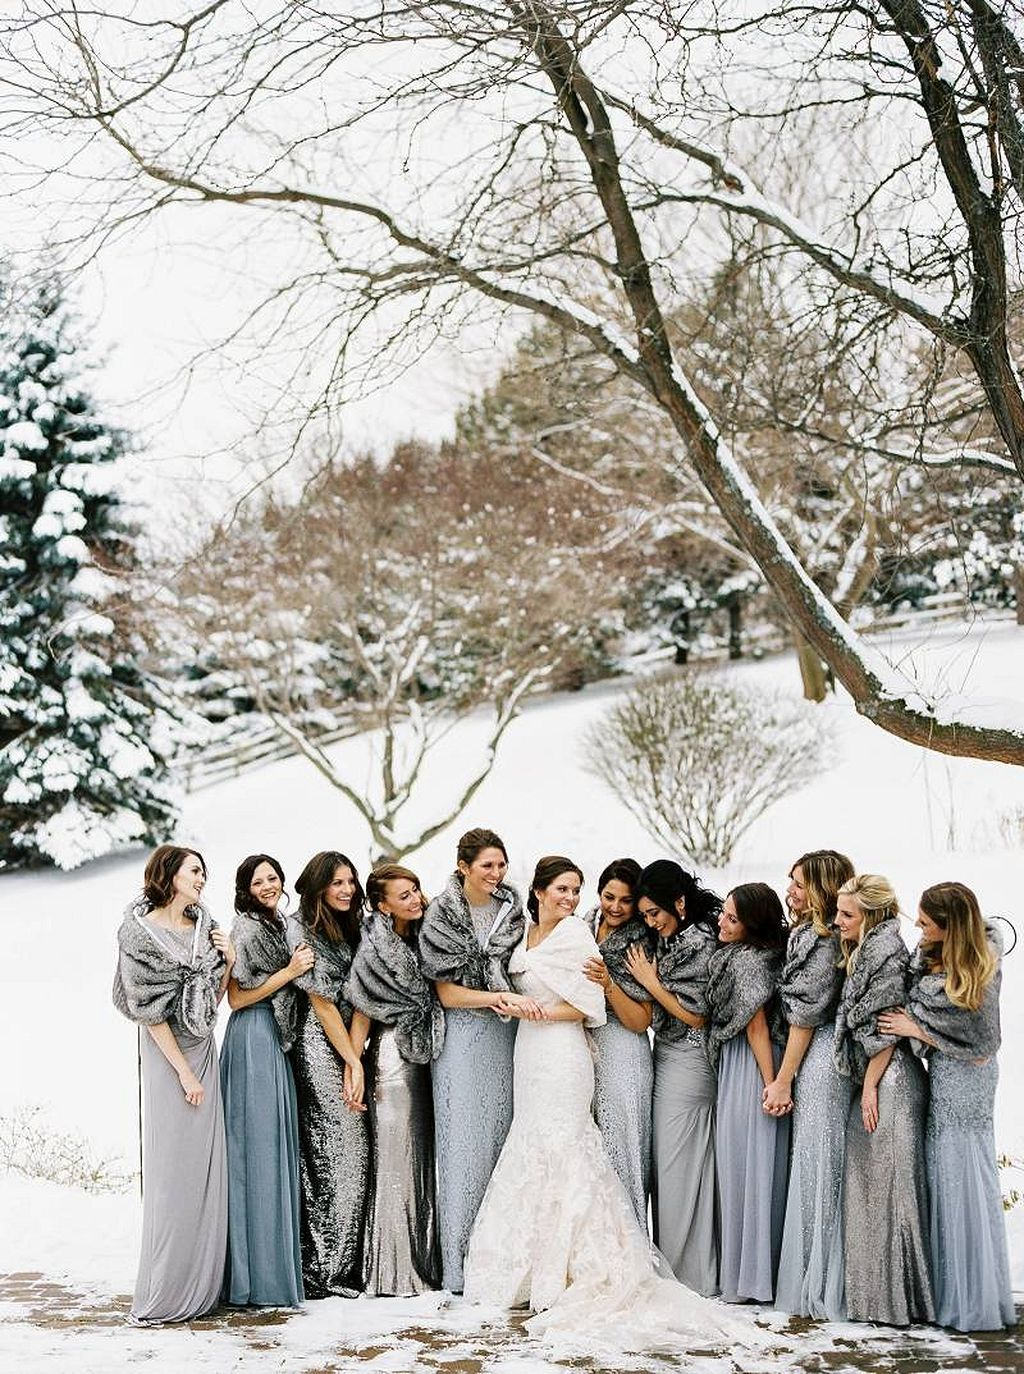 Gorgeous 40+ Awesome Alice in Worderland Wedding Theme Ideas https://weddmagz.com/40-awesome-alice-in-worderland-wedding-theme-ideas/